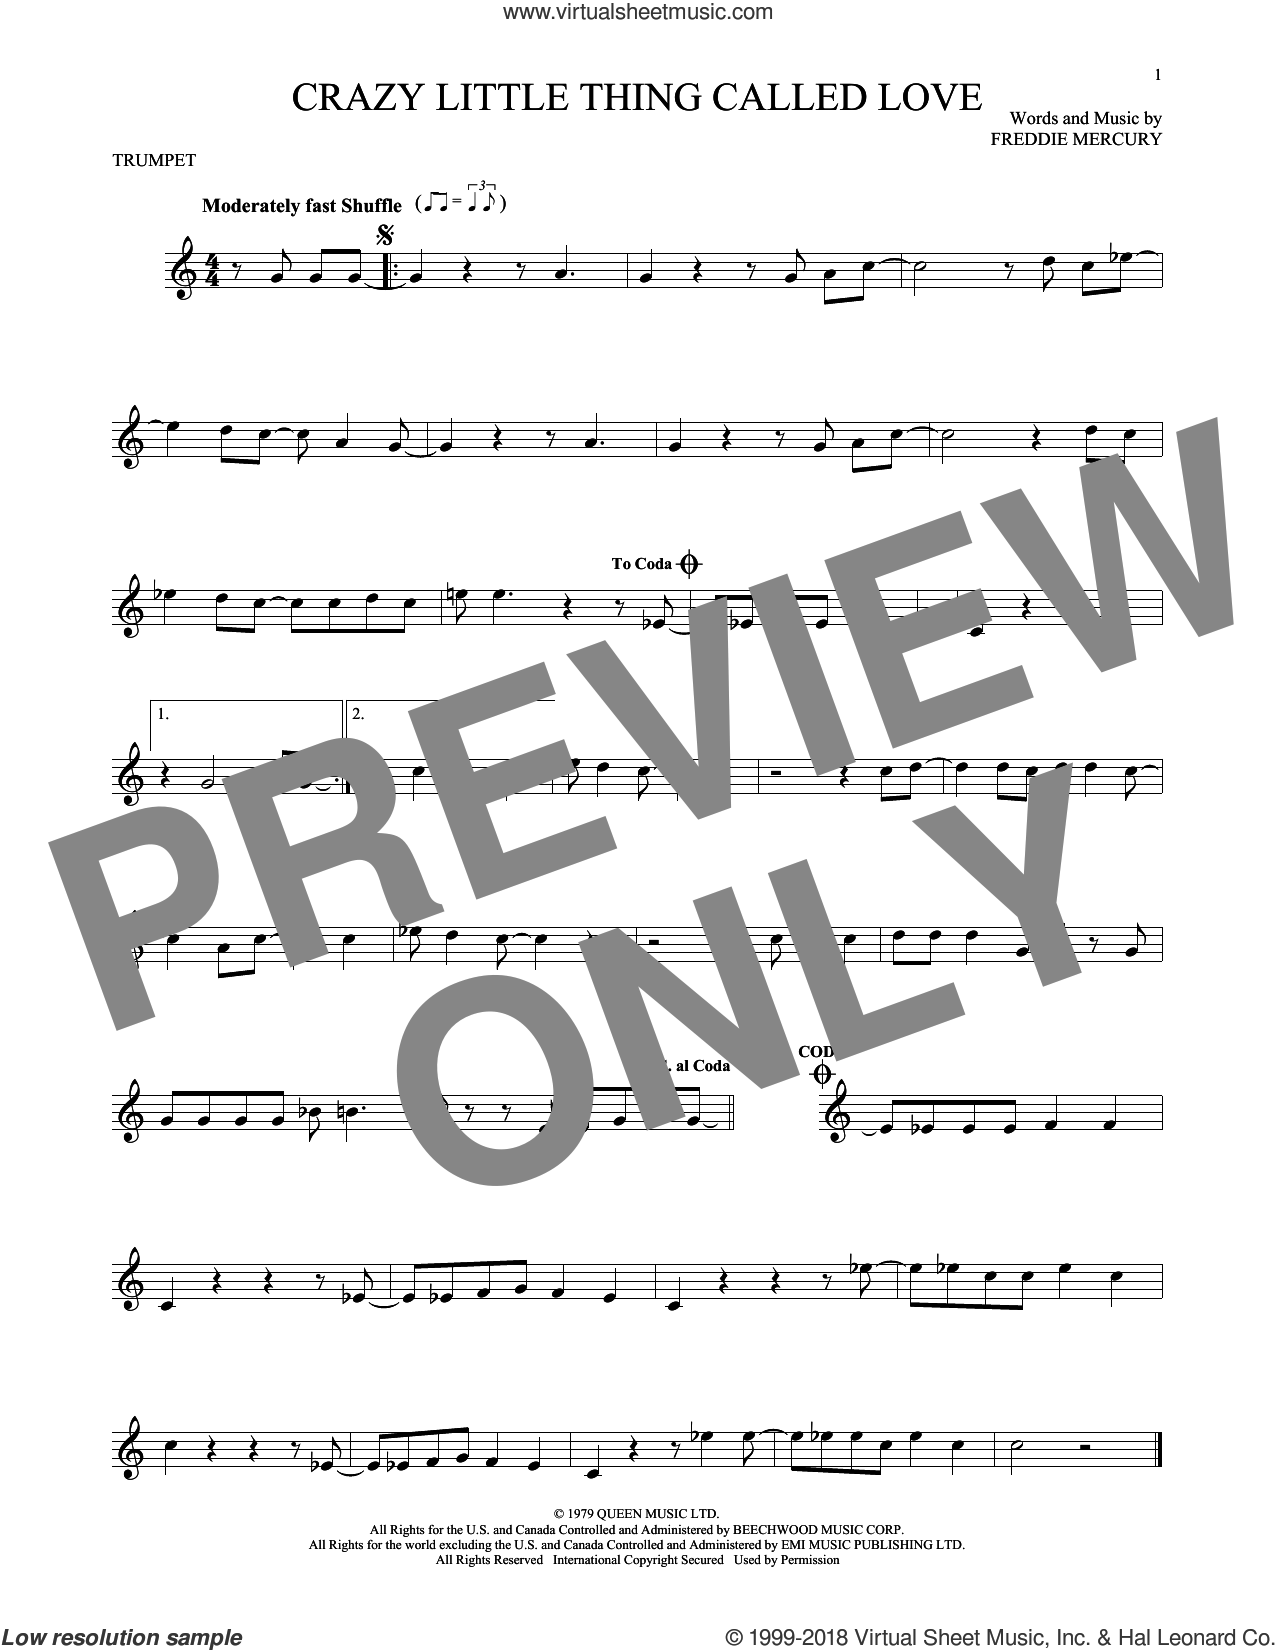 Crazy Little Thing Called Love sheet music for trumpet solo by Queen, Dwight Yoakam and Freddie Mercury, intermediate